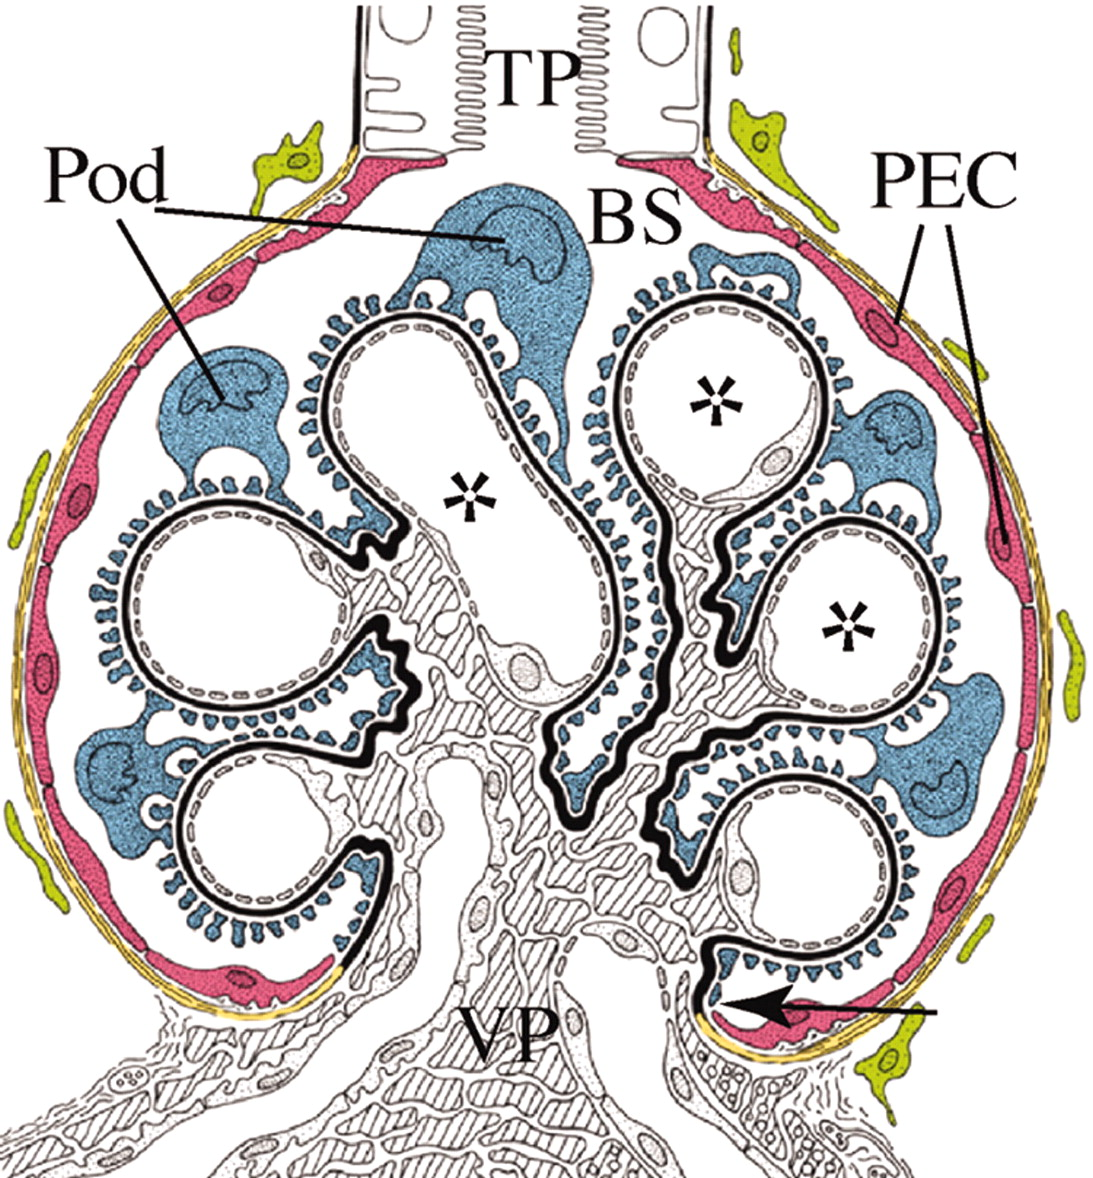 recruitment of podocytes from glomerular parietal epithelial cells